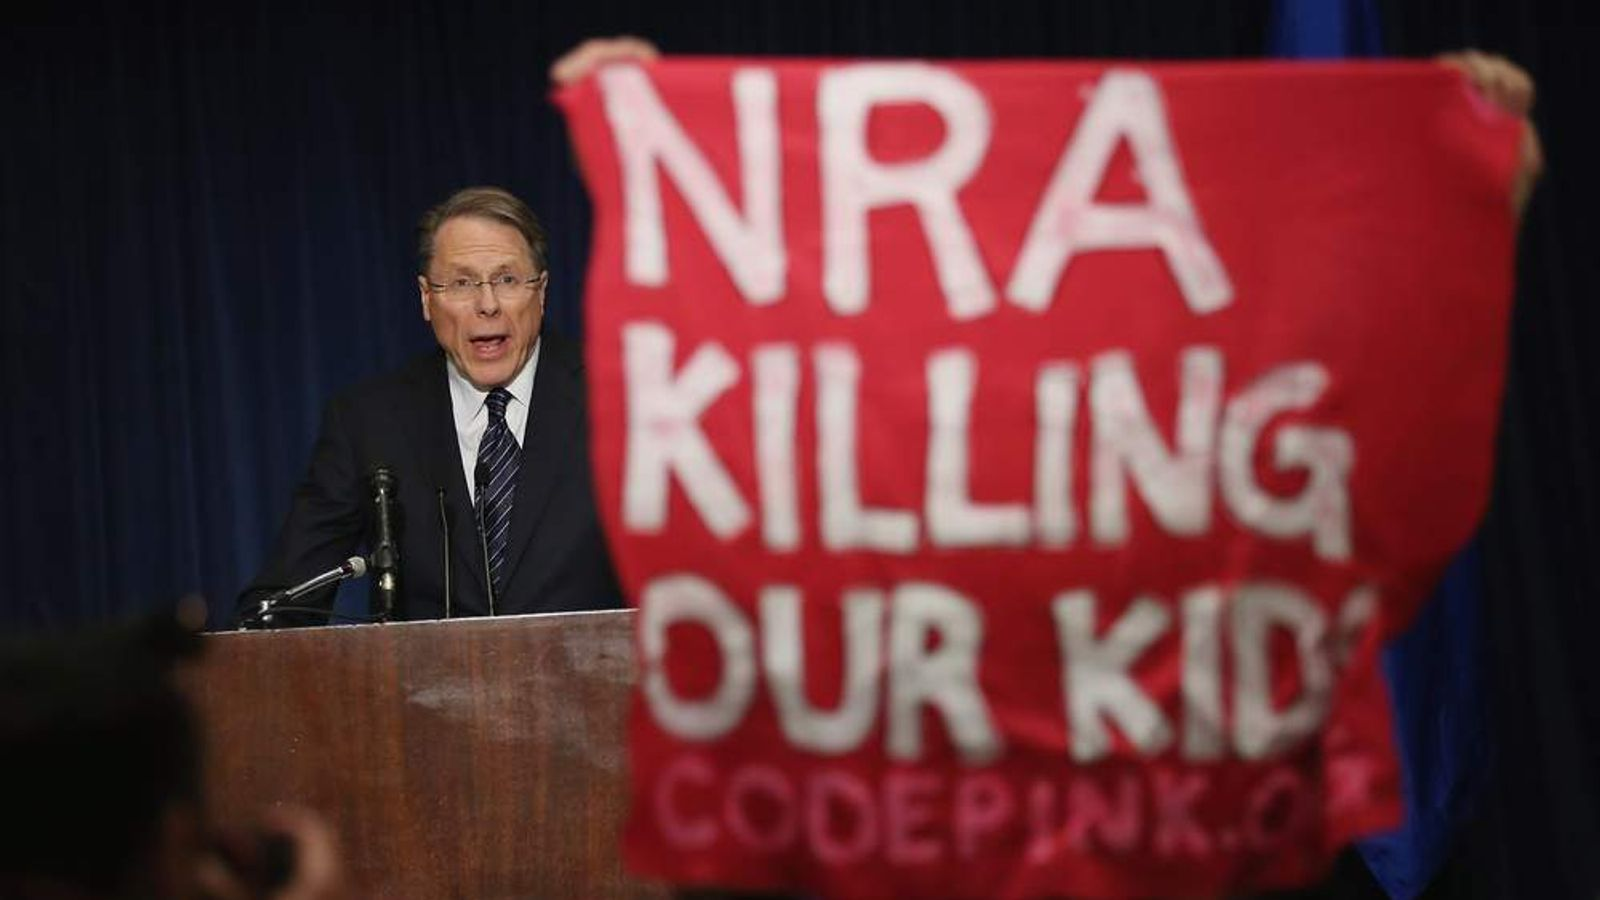 National Rifle Association Wayne LaPierre Holds News Conference In Wake Of Newtown School Shooting